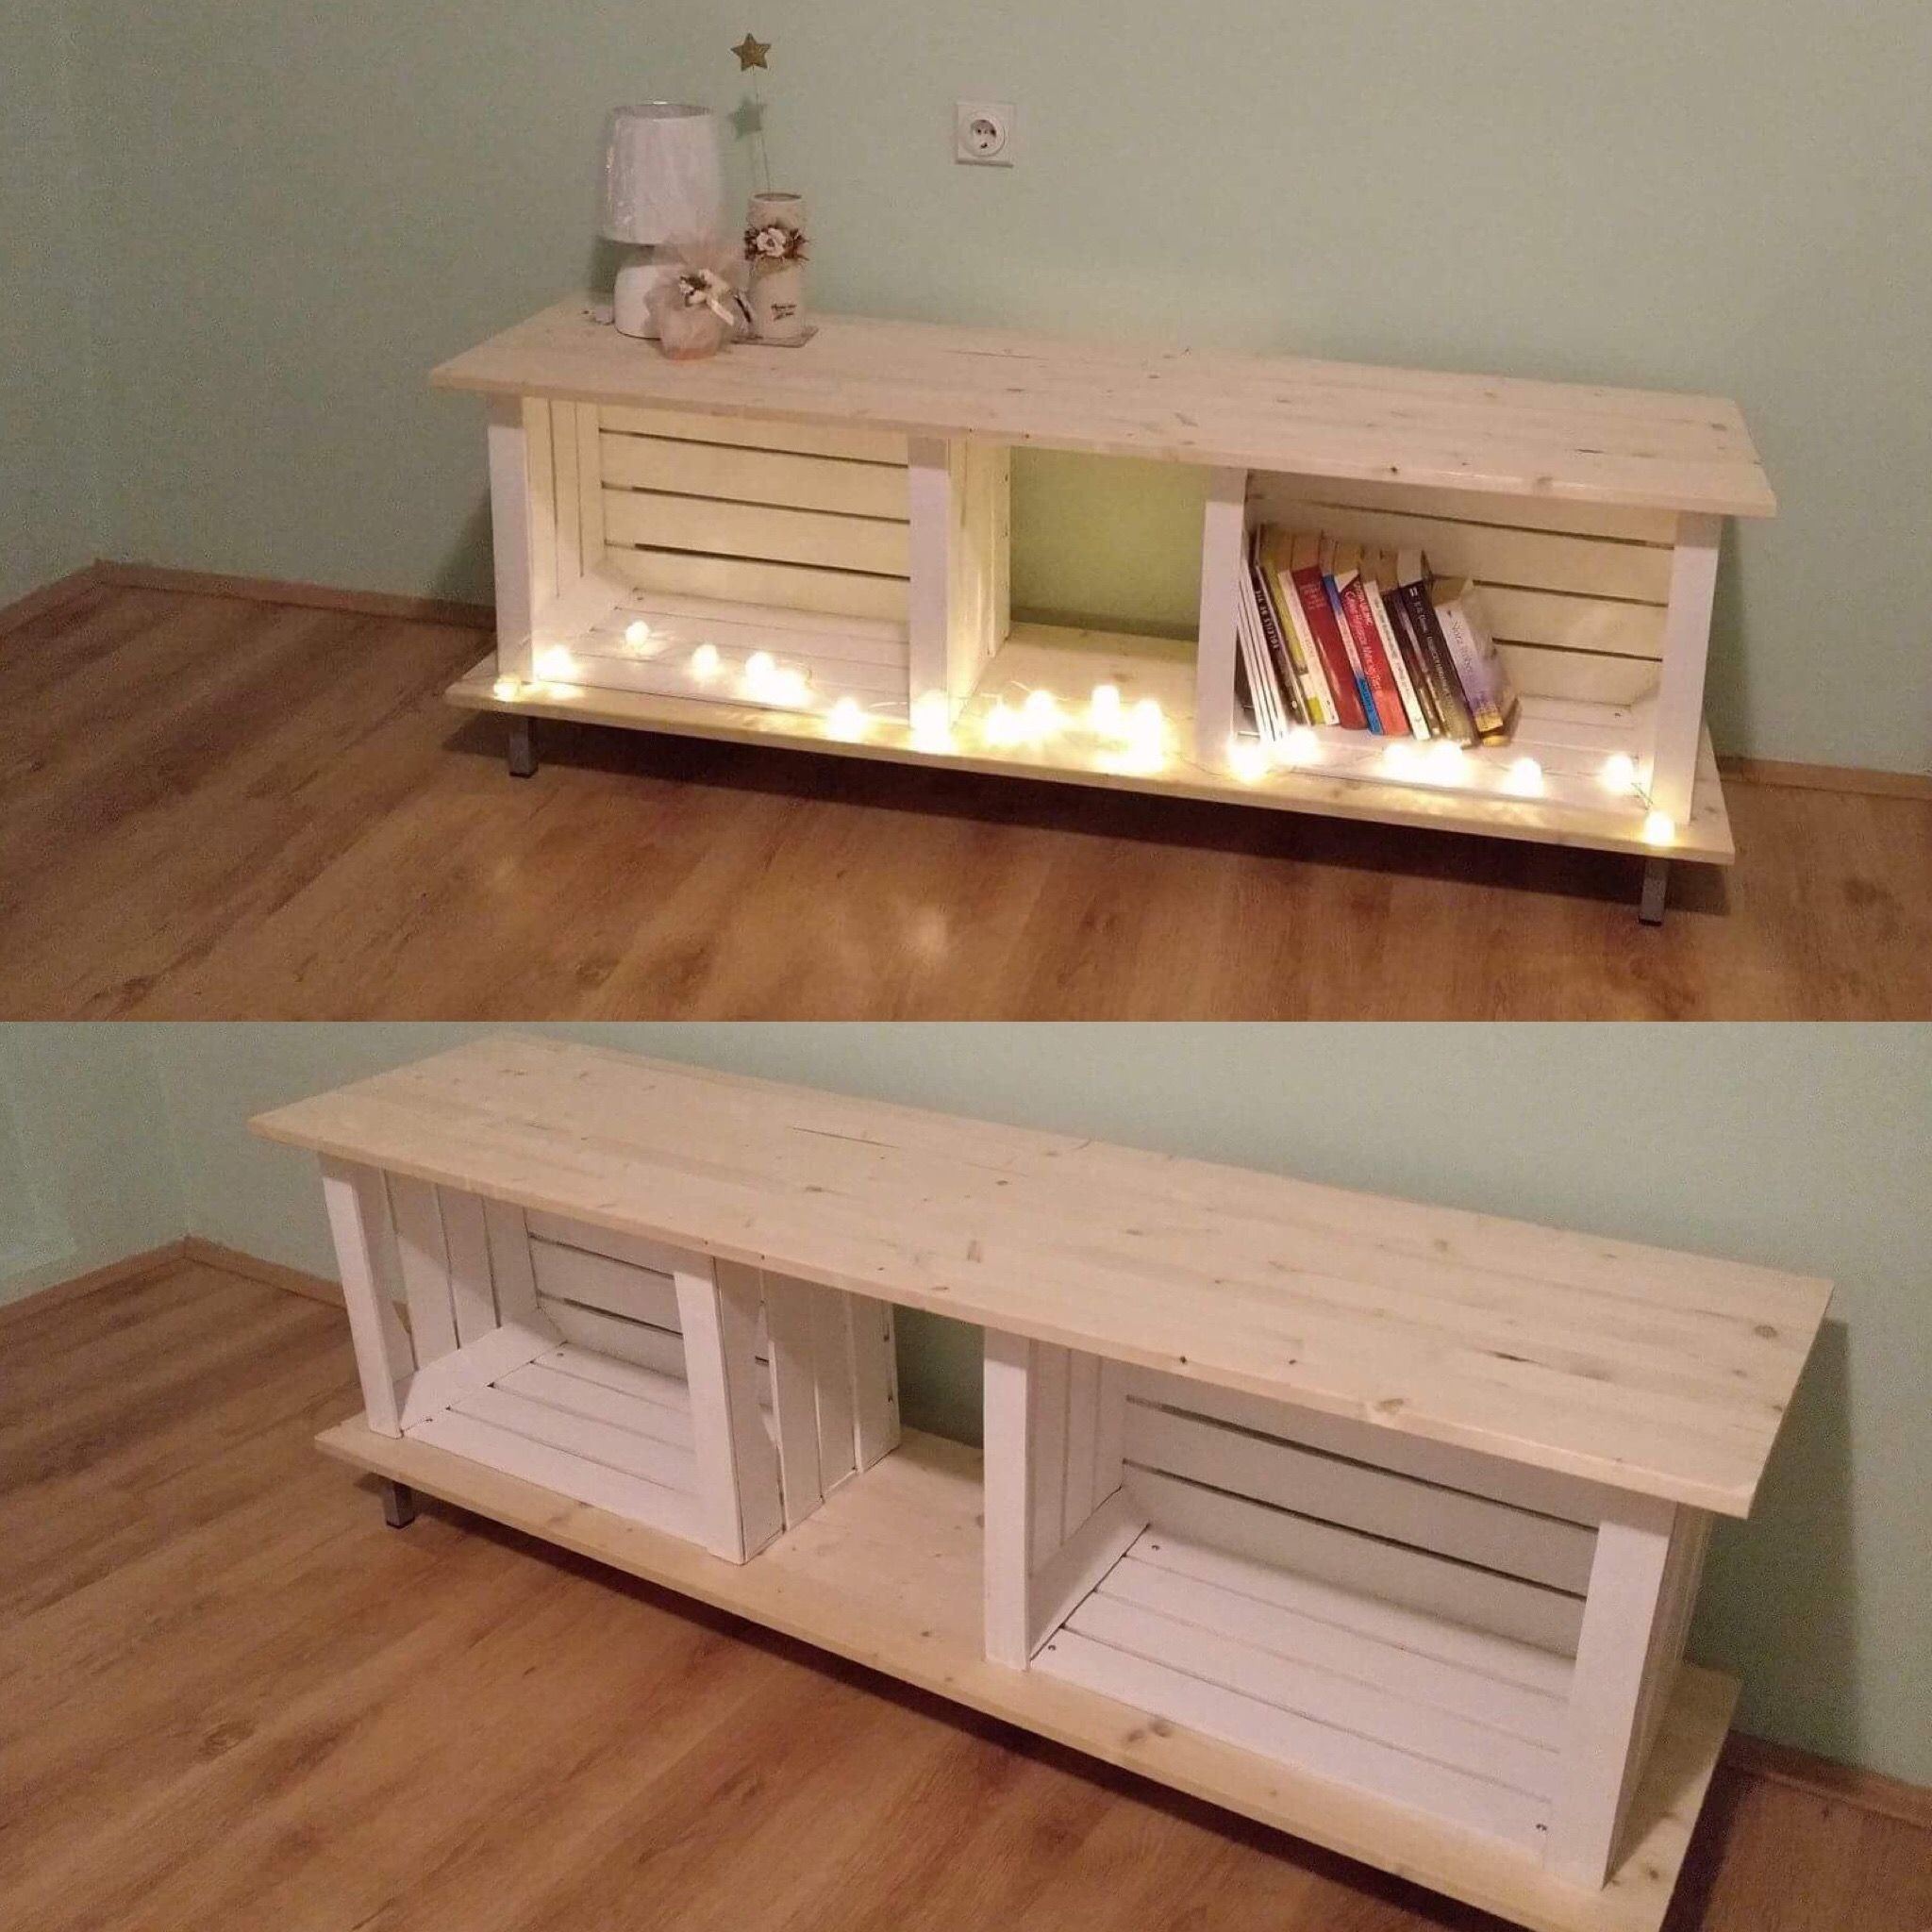 Our First Diy Project Wooden Crates Pinterest Inspired Tv Stand  # Meuble Tv Caisse A Pomme